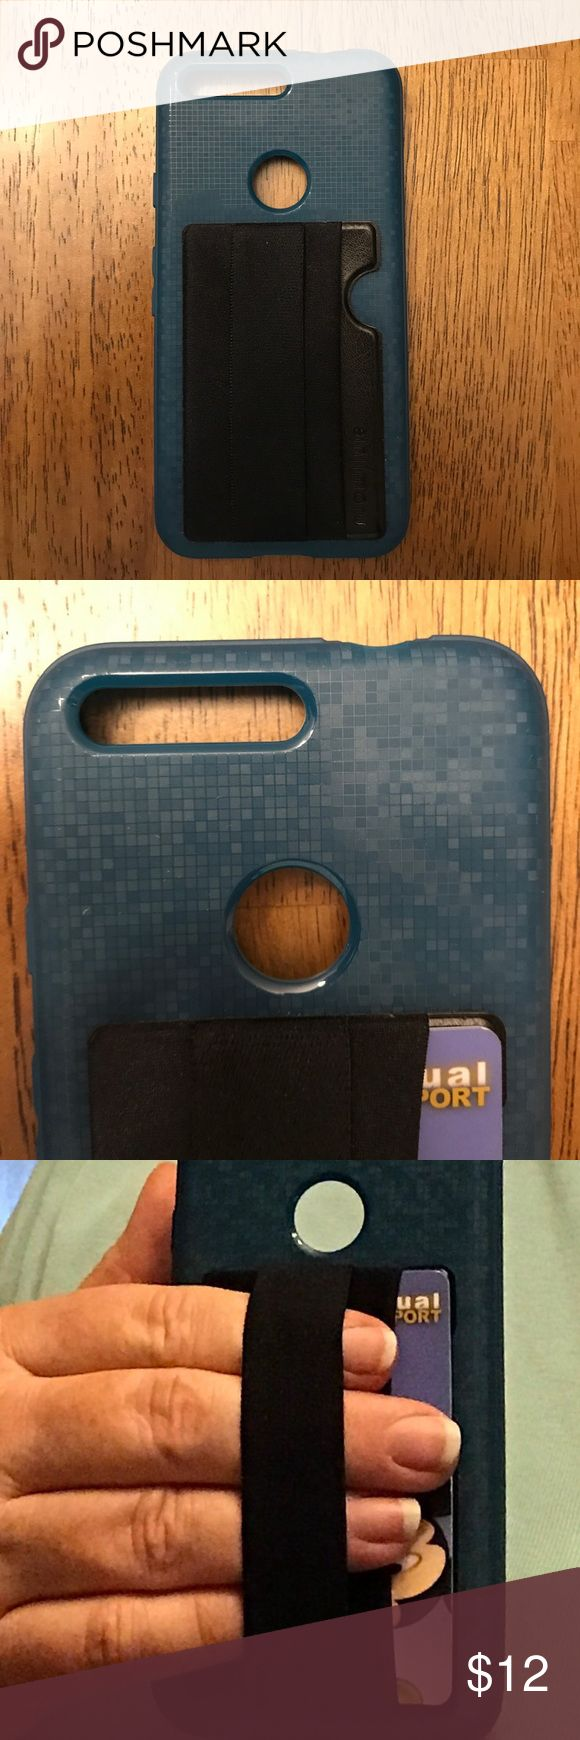 "Teal cell phone case for Google Pixel, nearly new. Teal TPU cell phone case for Google Pixel, nearly new. Used for a week, then decided to switch phones. Has ""lay-on-the-table"" design that helps protect display from damage. Has a cool pixel pattern. I attached a card holder with an elastic strap to put your fingers in. It is removable, and the company says it will leave no residue. Diztronic Accessories Phone Cases"